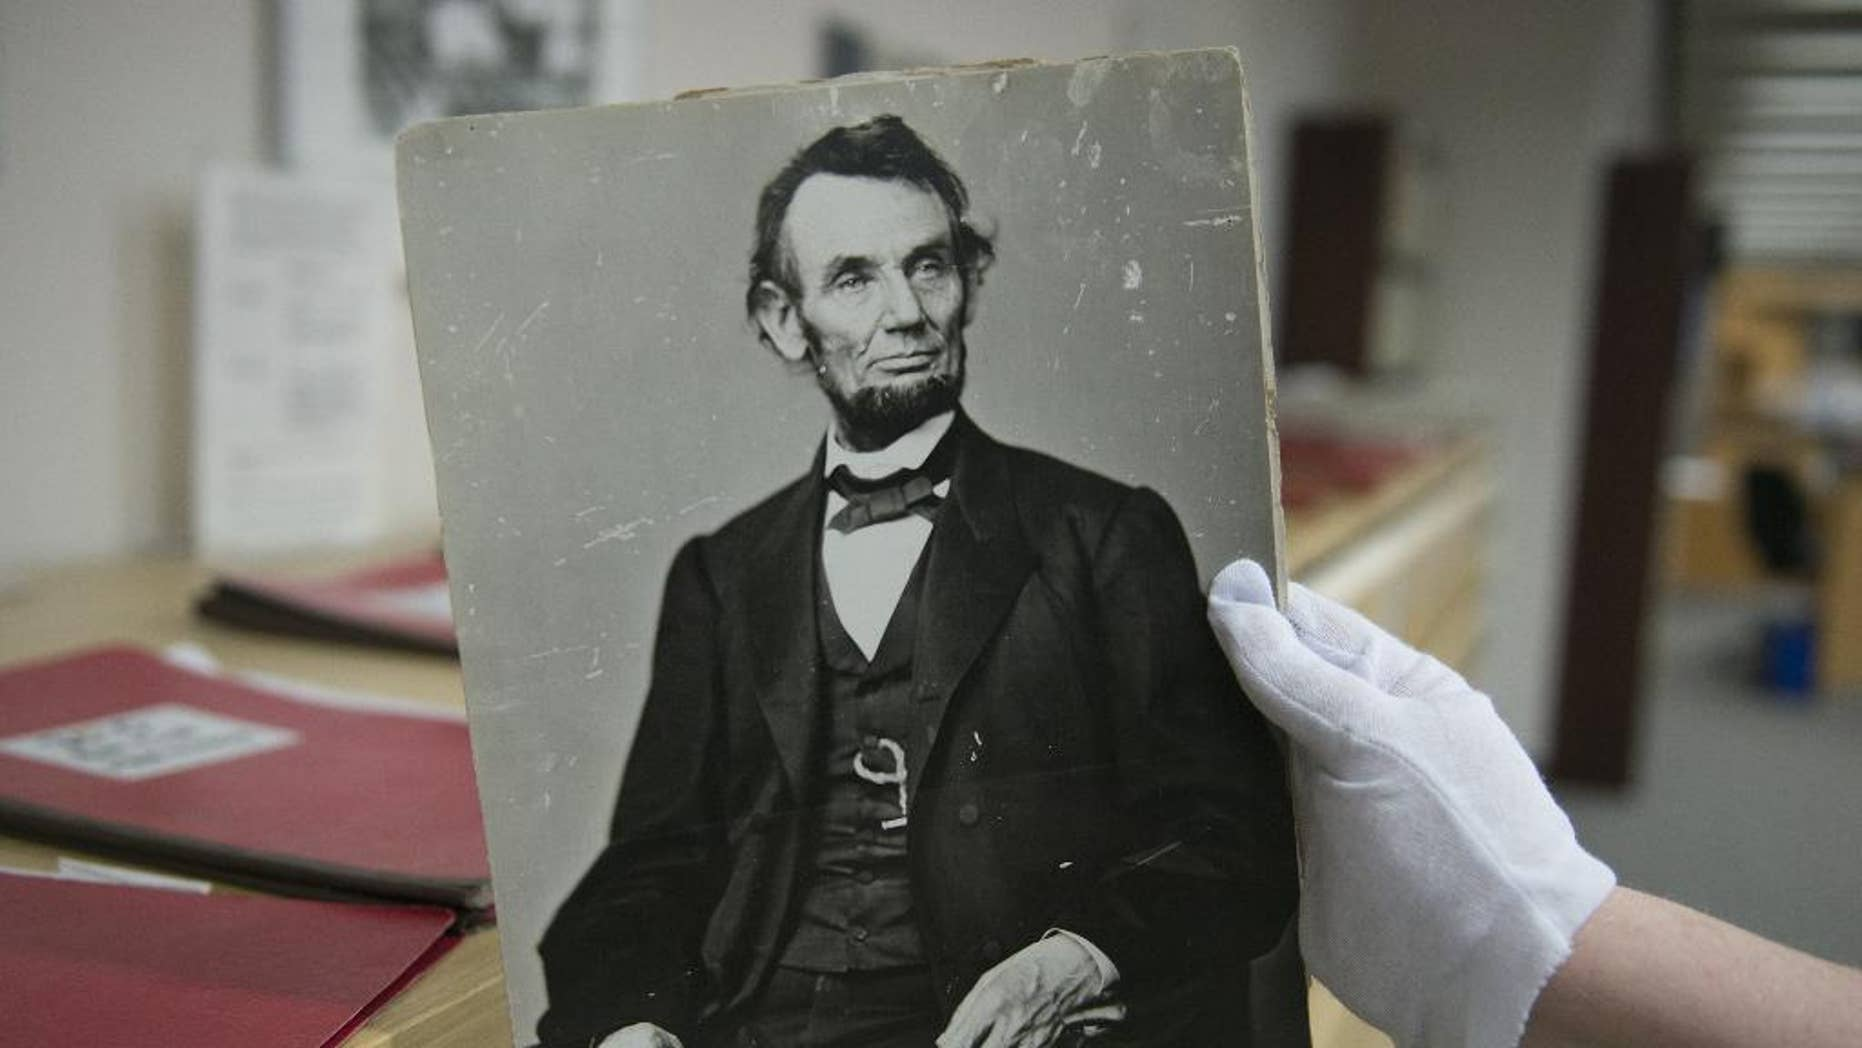 In this Monday, April 6, 2015 photo, Karen Needles holds up a photograph of President Abraham Lincoln at the National Archives in College Park, Md. Three blocks away, 150 years earlier, Lincoln was felled by an assassin's bullet. (AP Photo/Molly Riley)